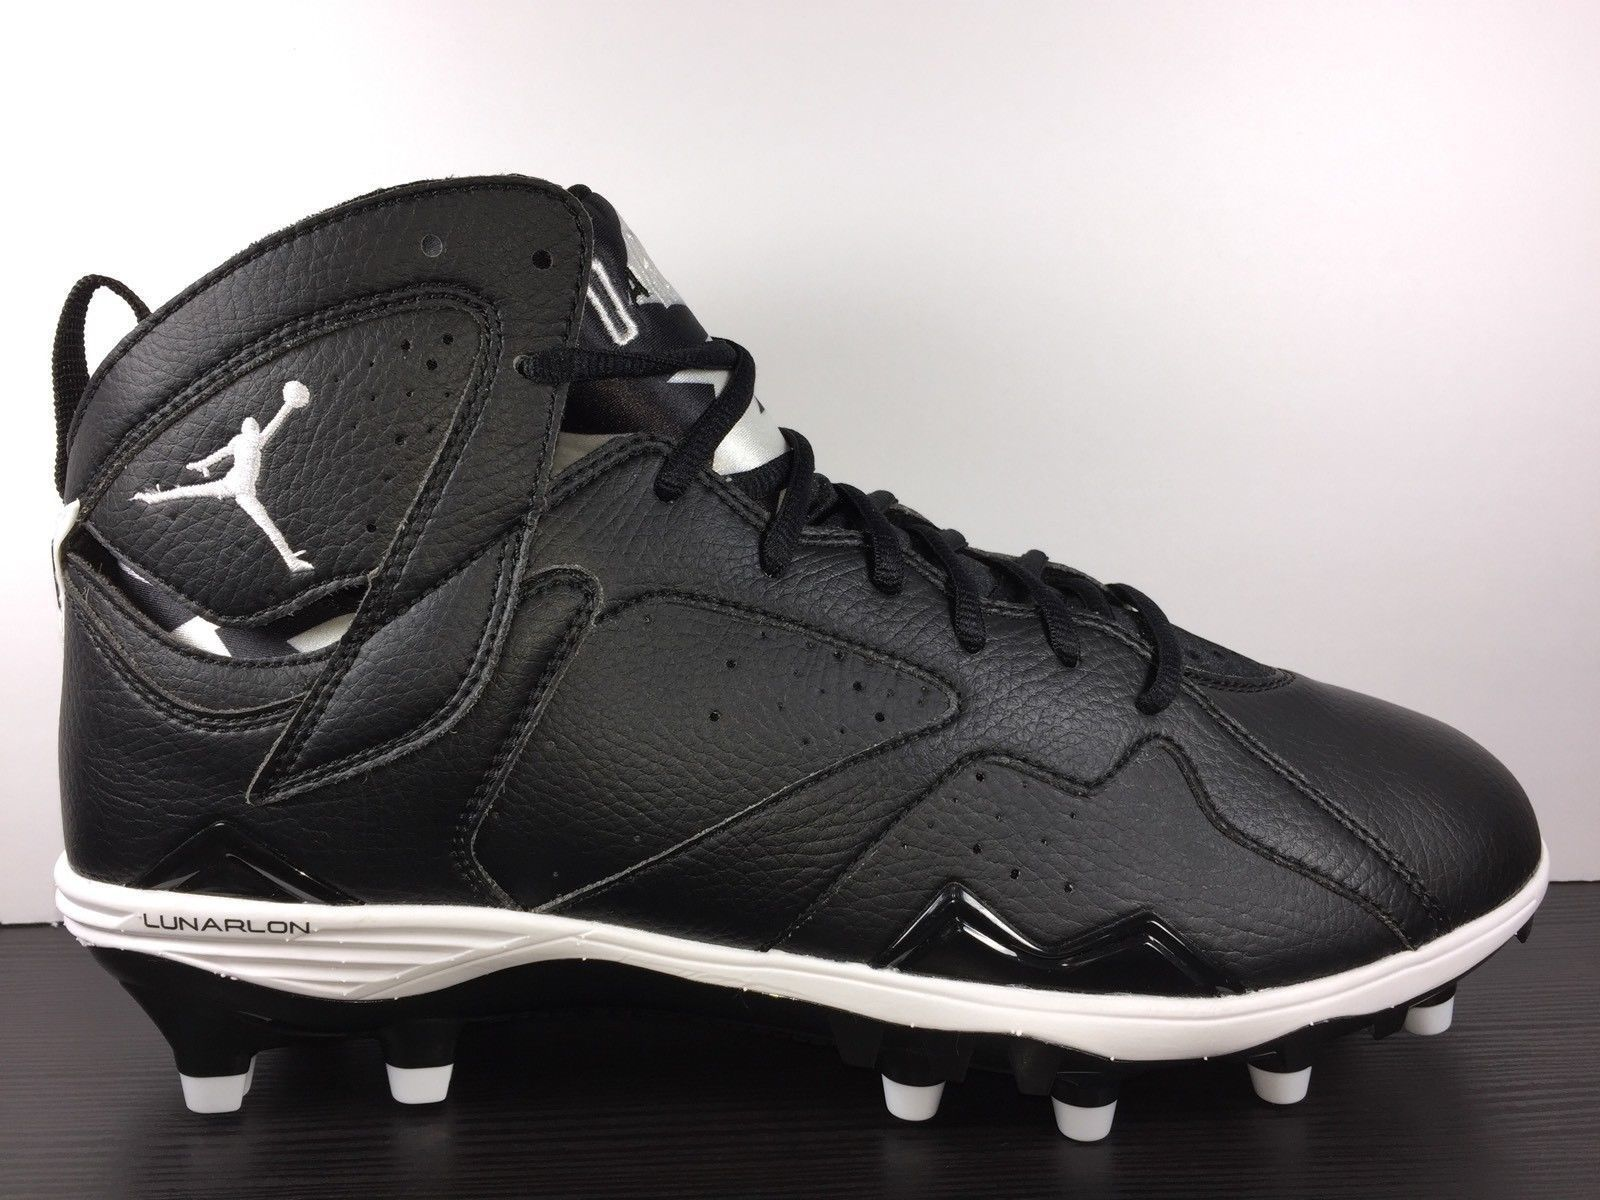 f81f5ffbbc76 ... NIKE AIR JORDAN 7 VII RETRO QB TD FOOTBALL CLEATS FAST OREO NFL 719543- 010 ...